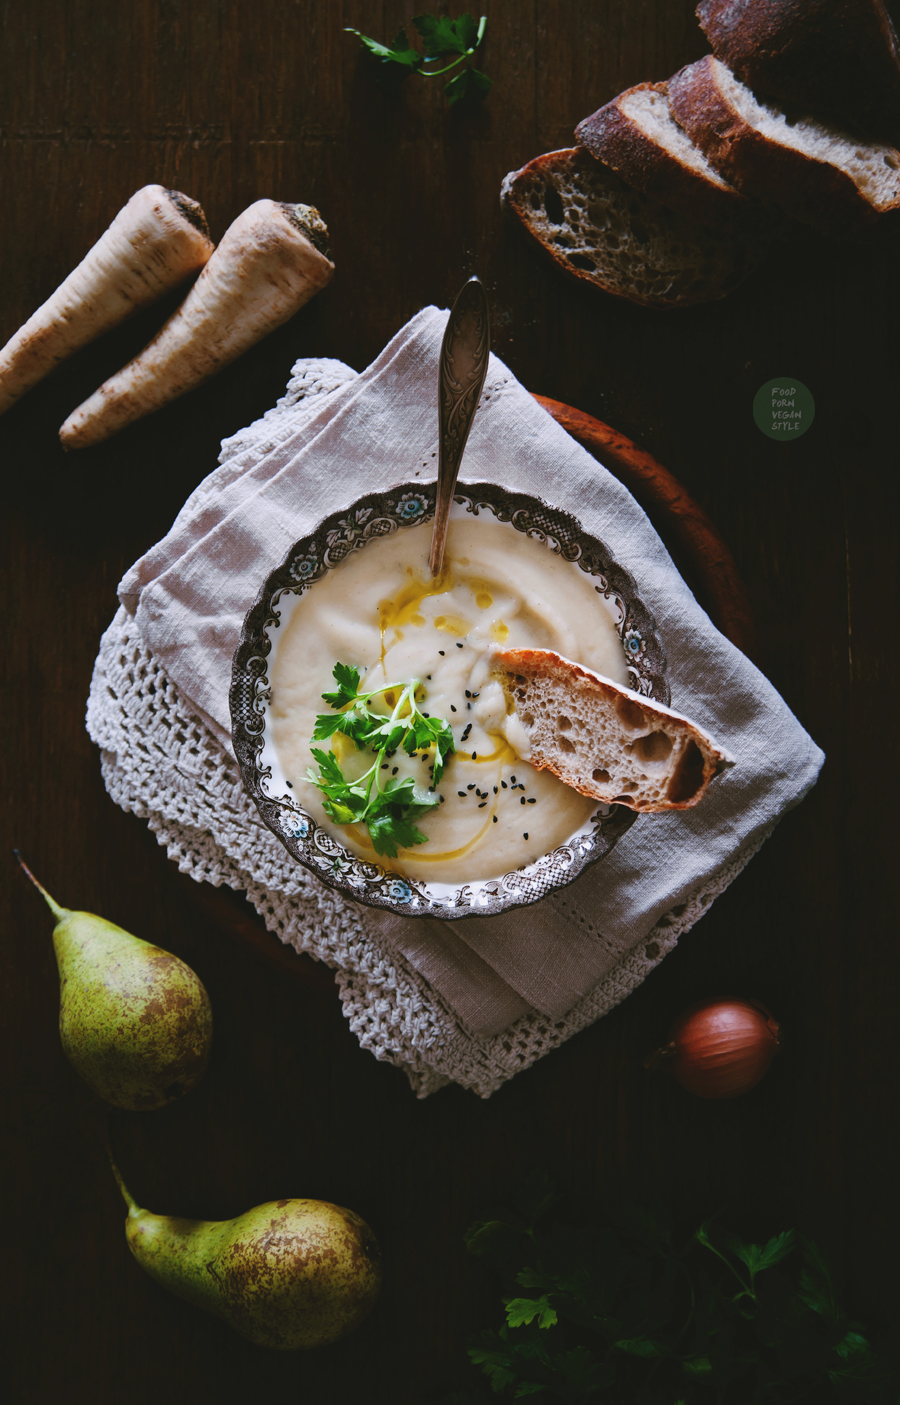 Pear and parsnip soup with tarragon